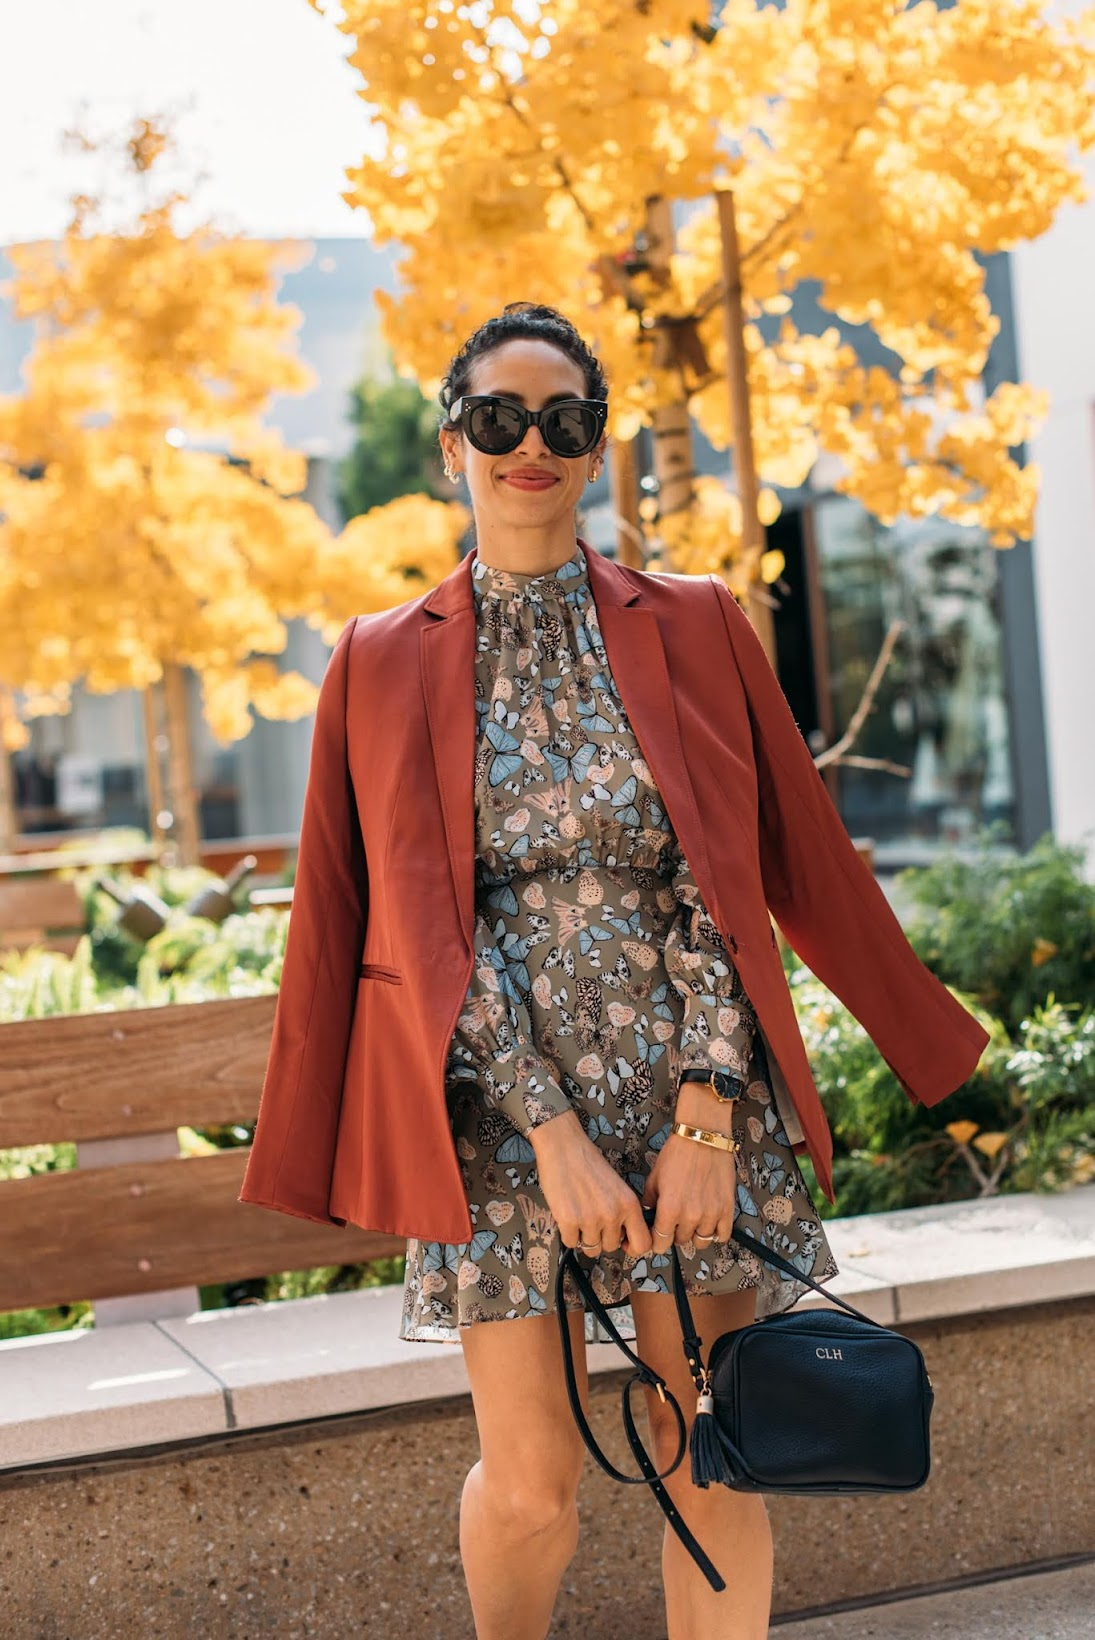 TVF for DVF, DVF, spring style, Miista boots, chic French girl style